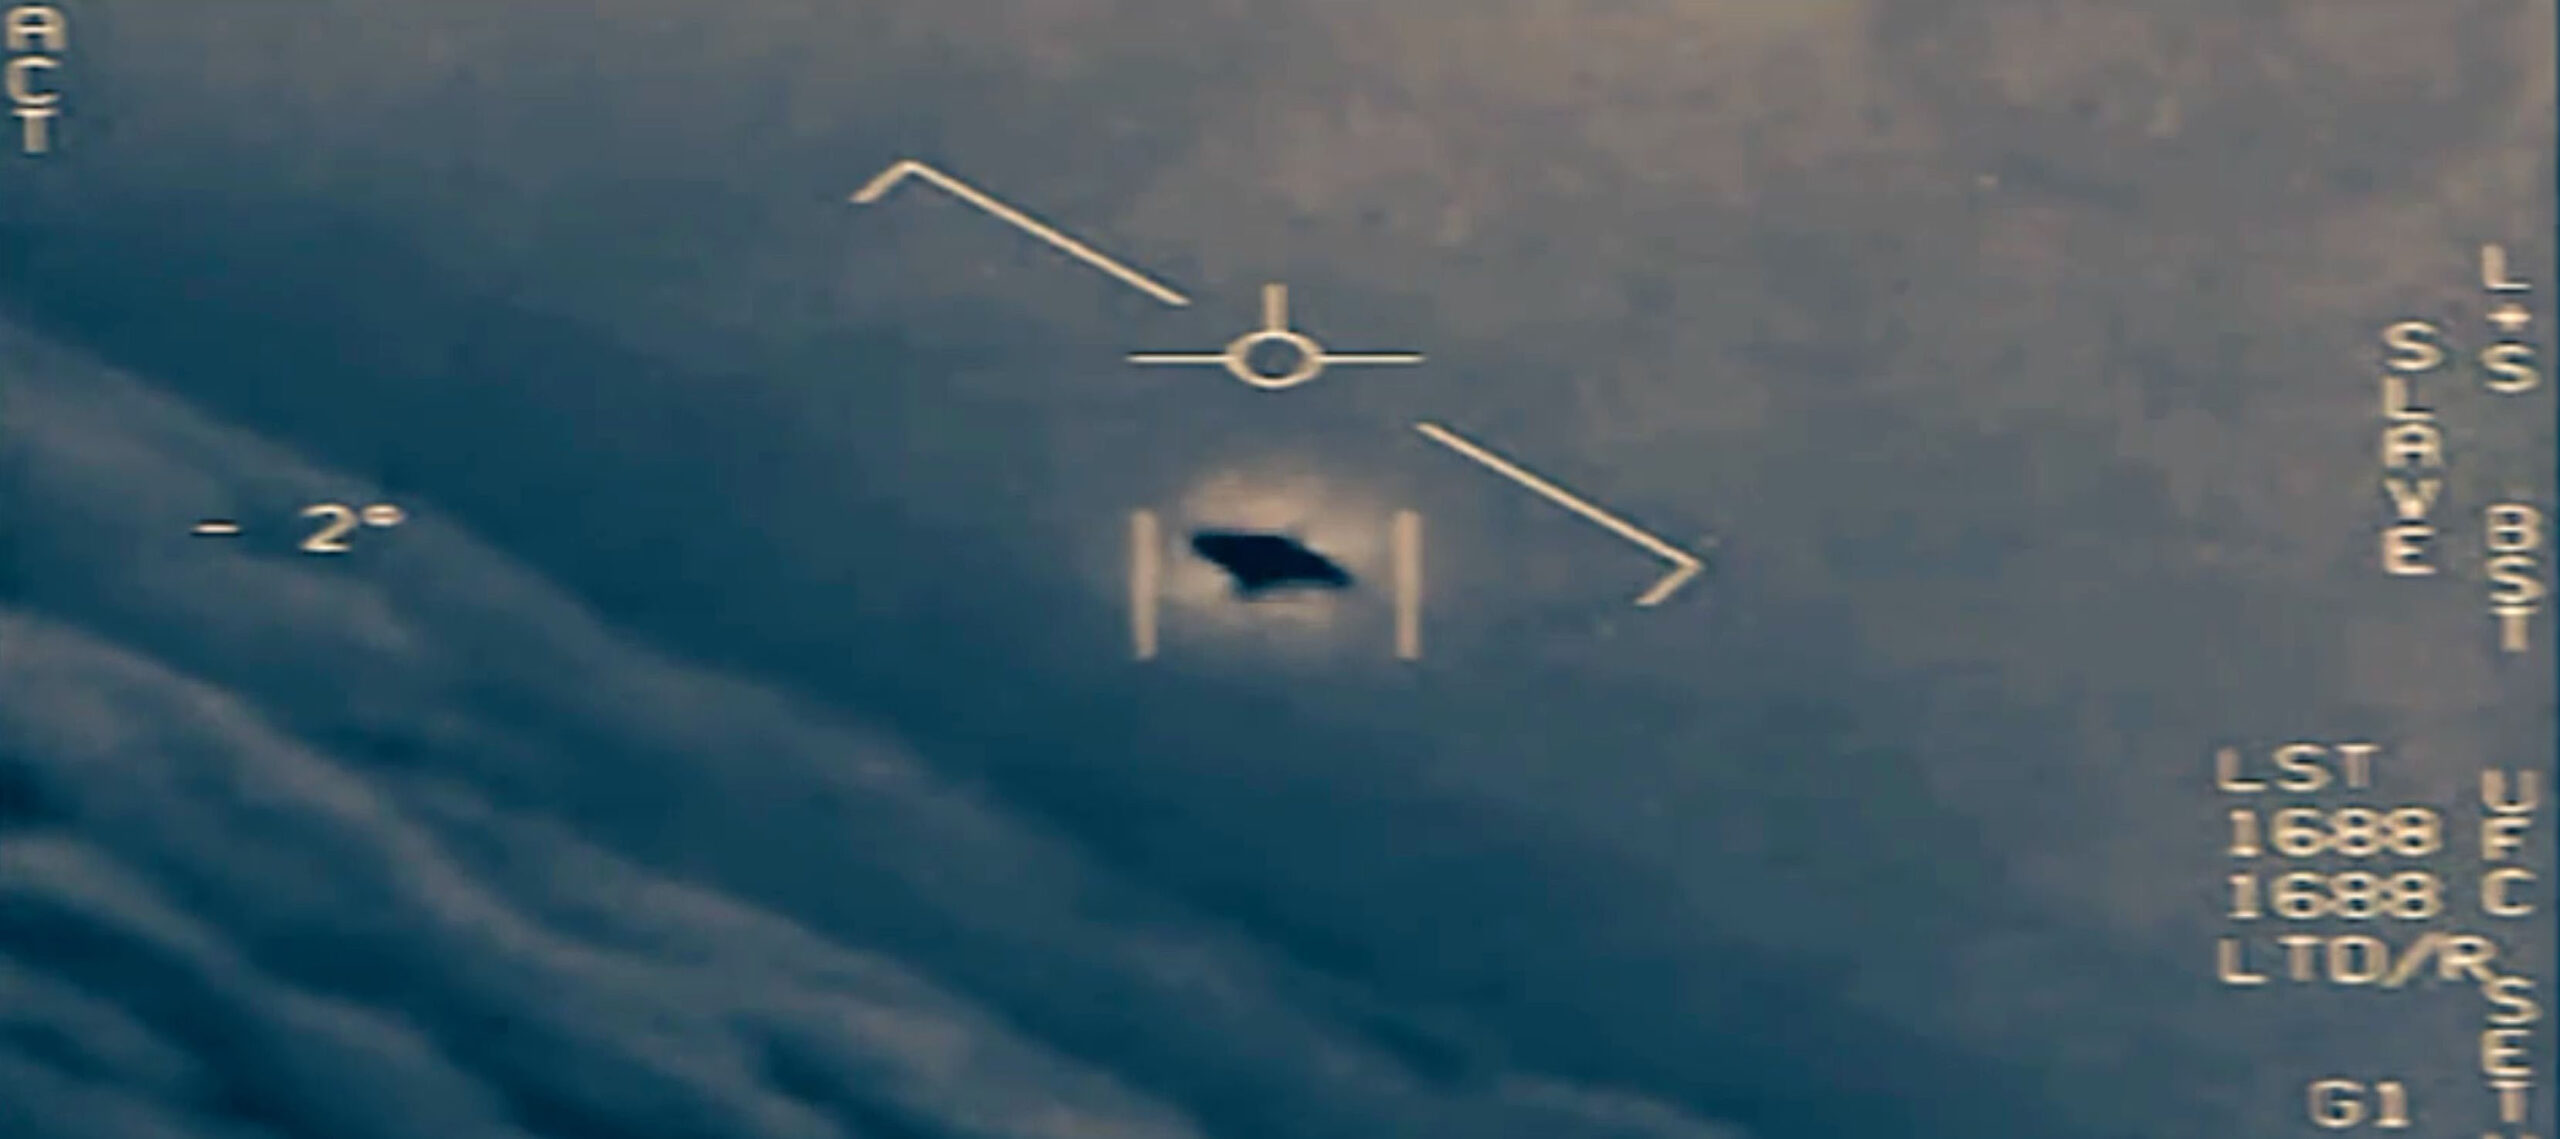 US Department Of Defence Officially Confirms Existence Of Unidentified Flying Object (UFO)